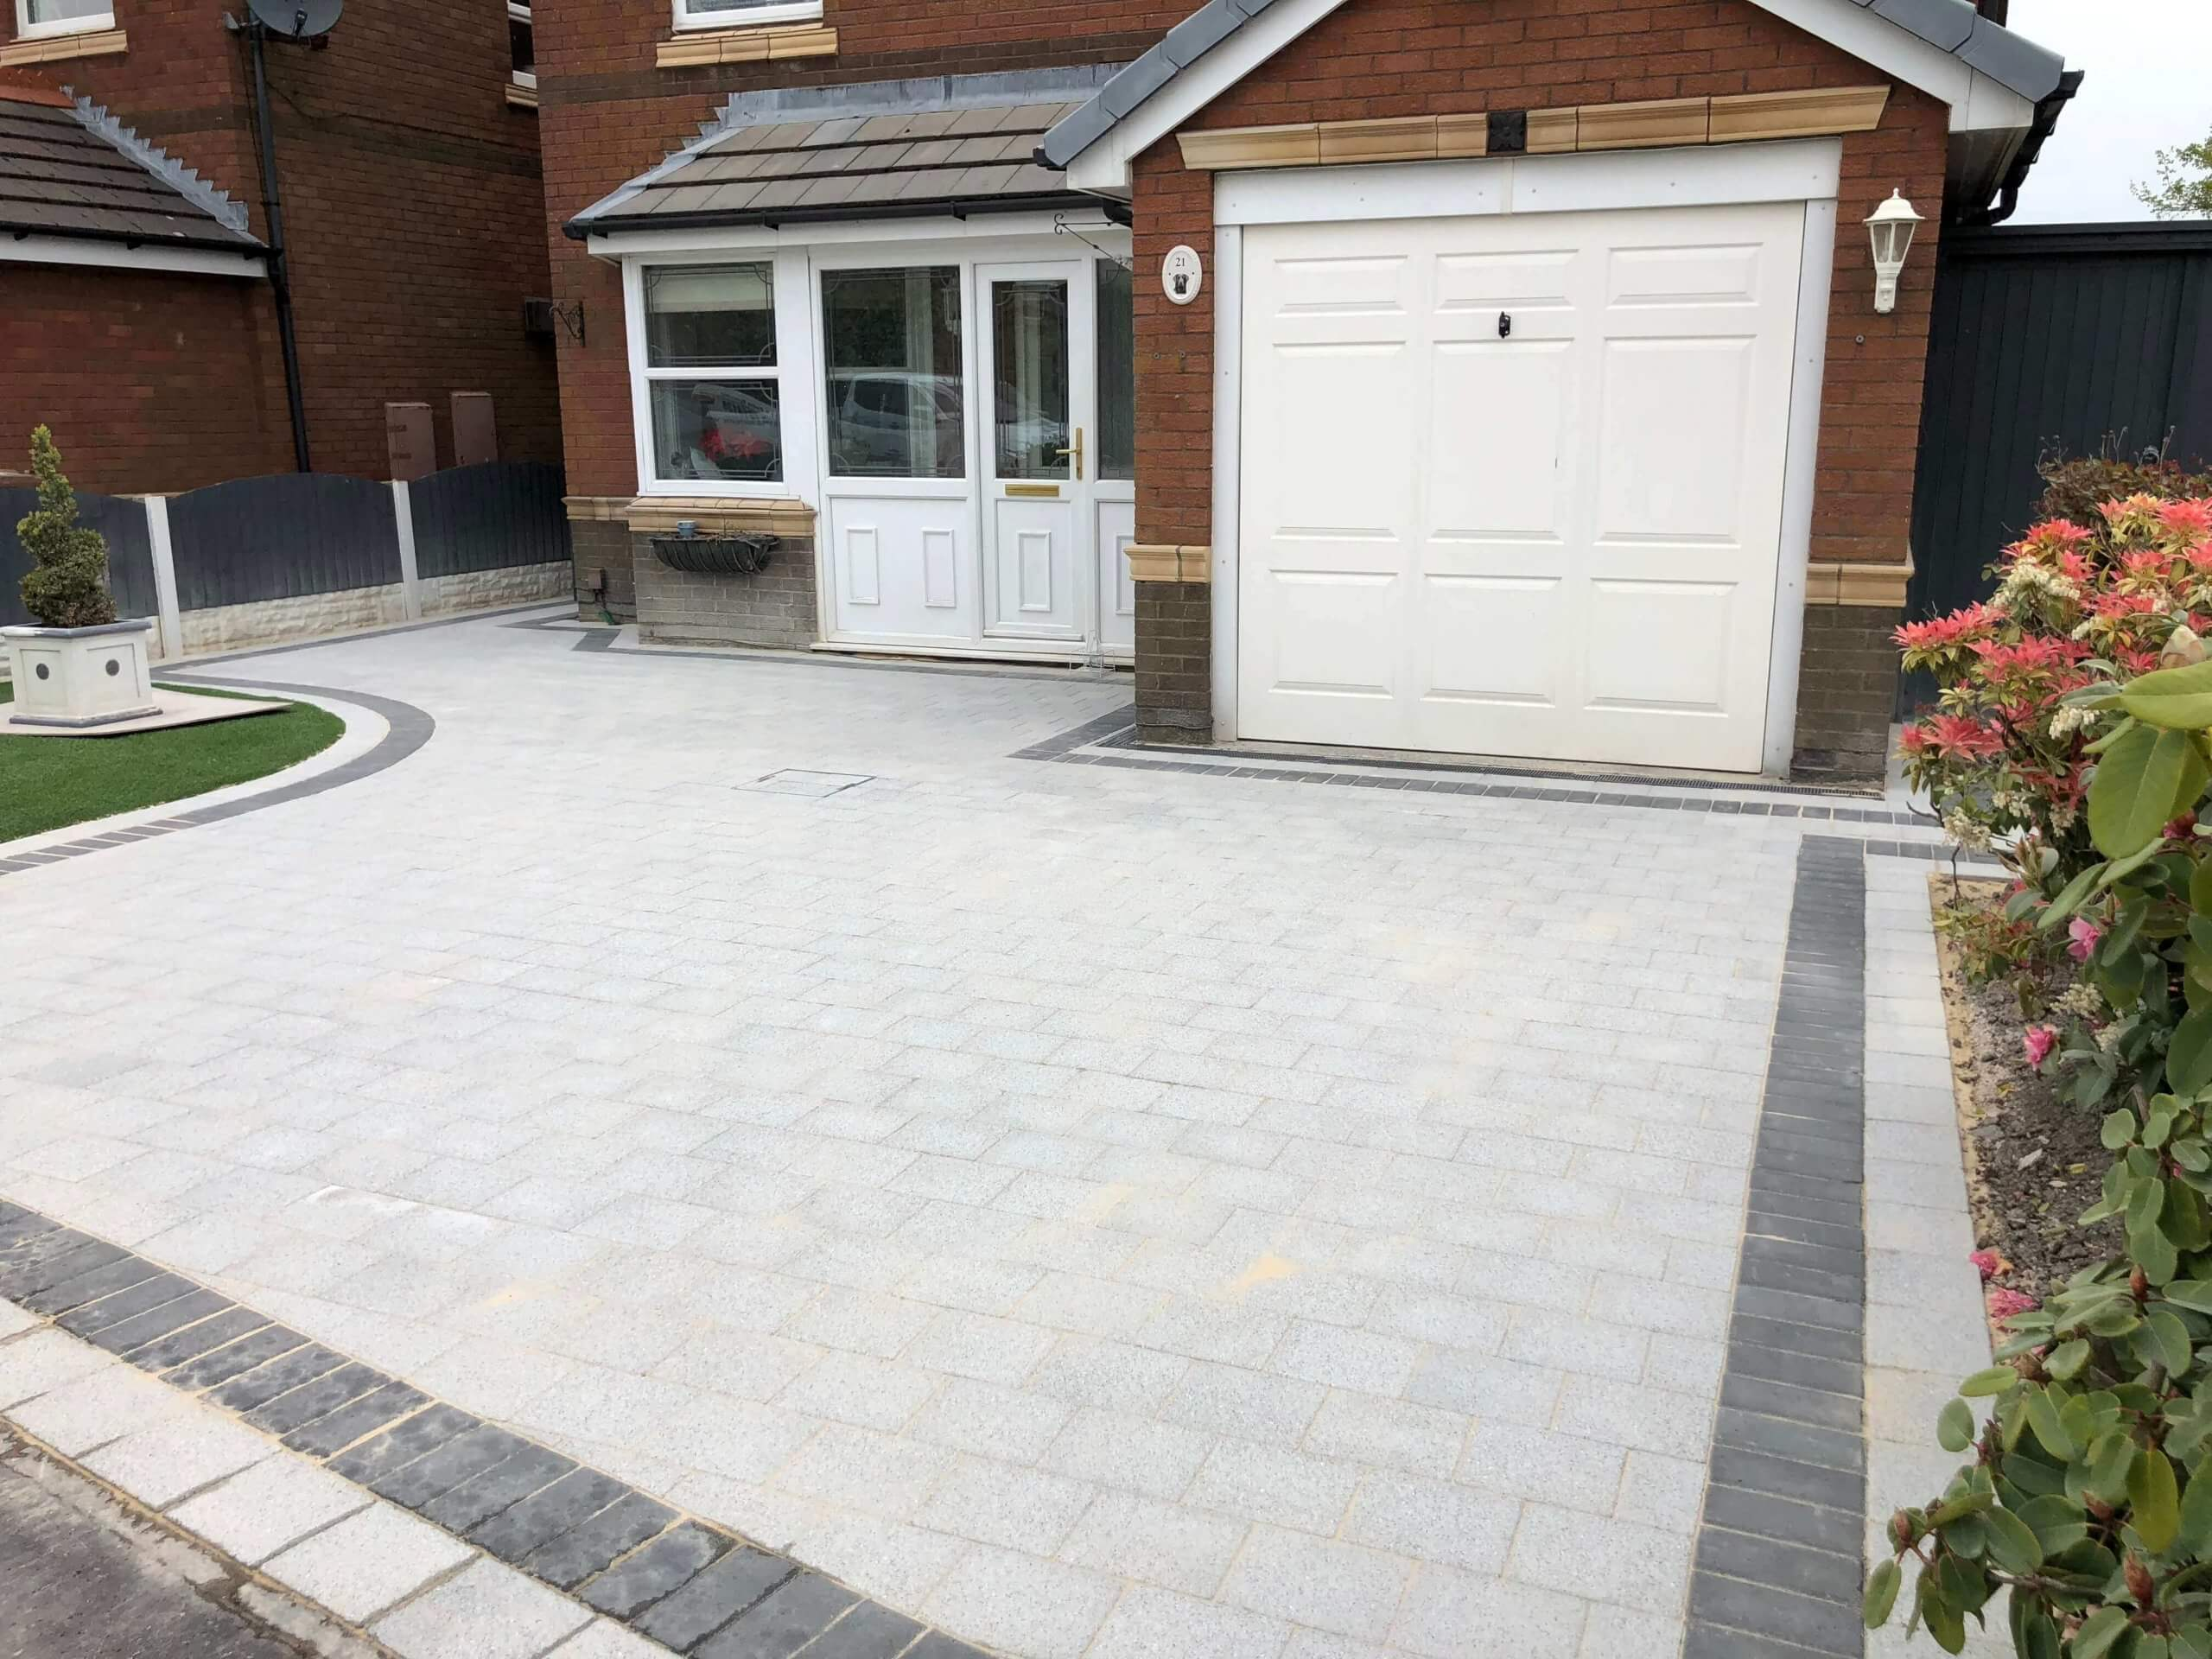 Block Paving Driveway in Lancaster, Lancashire in the colour Sienna Silver with border